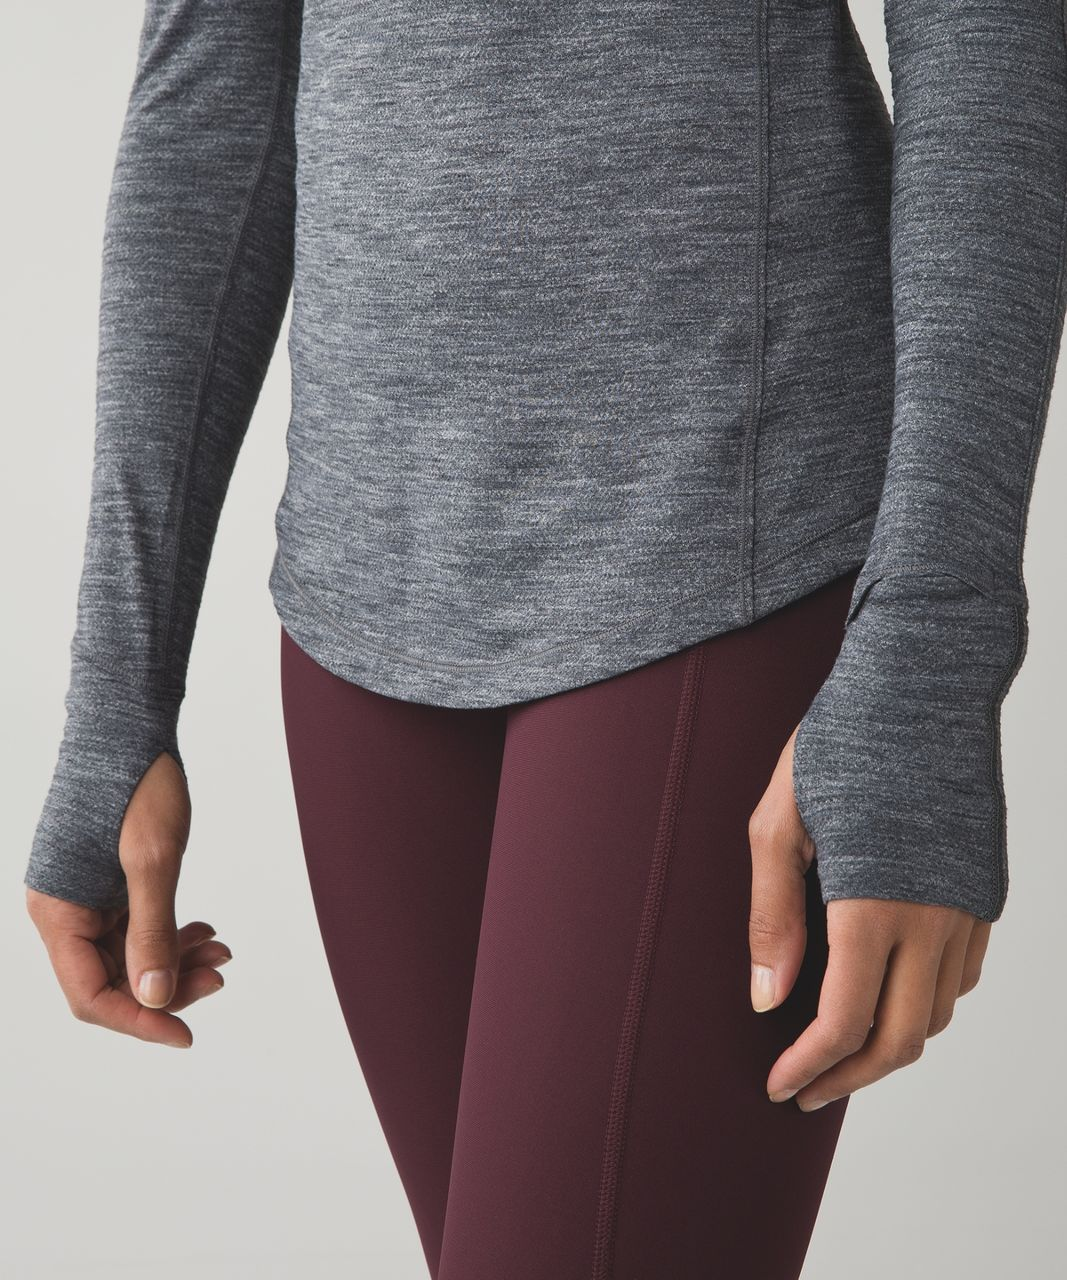 Lululemon 5 Mile Long Sleeve - Tiger Space Dye Dark Slate Black